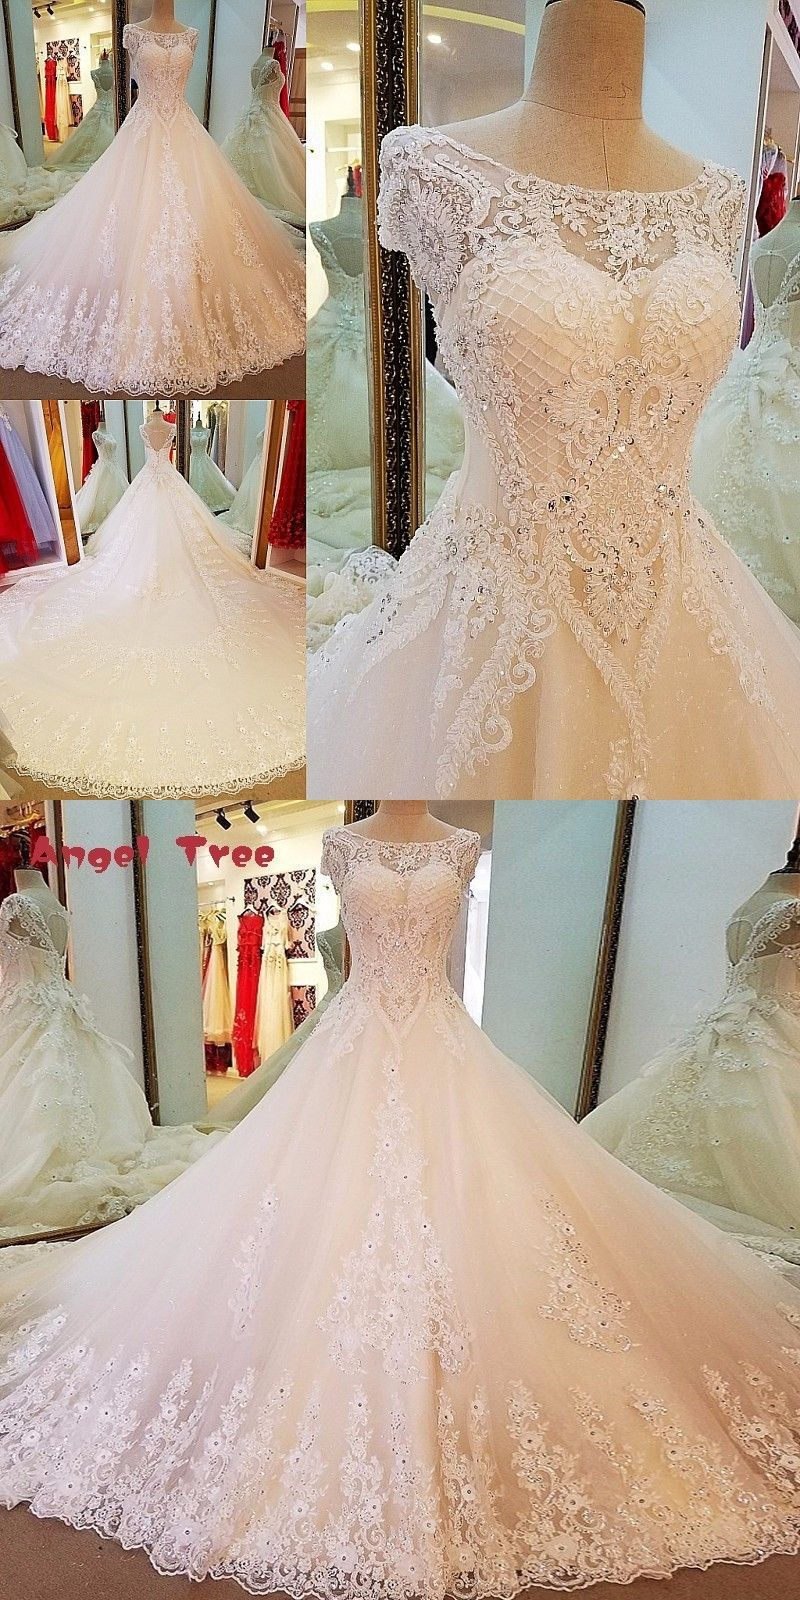 c5ce24c83a4 Angel Tree Long tail wedding dress ball gown lace up back short sleeves  beading vestidos de